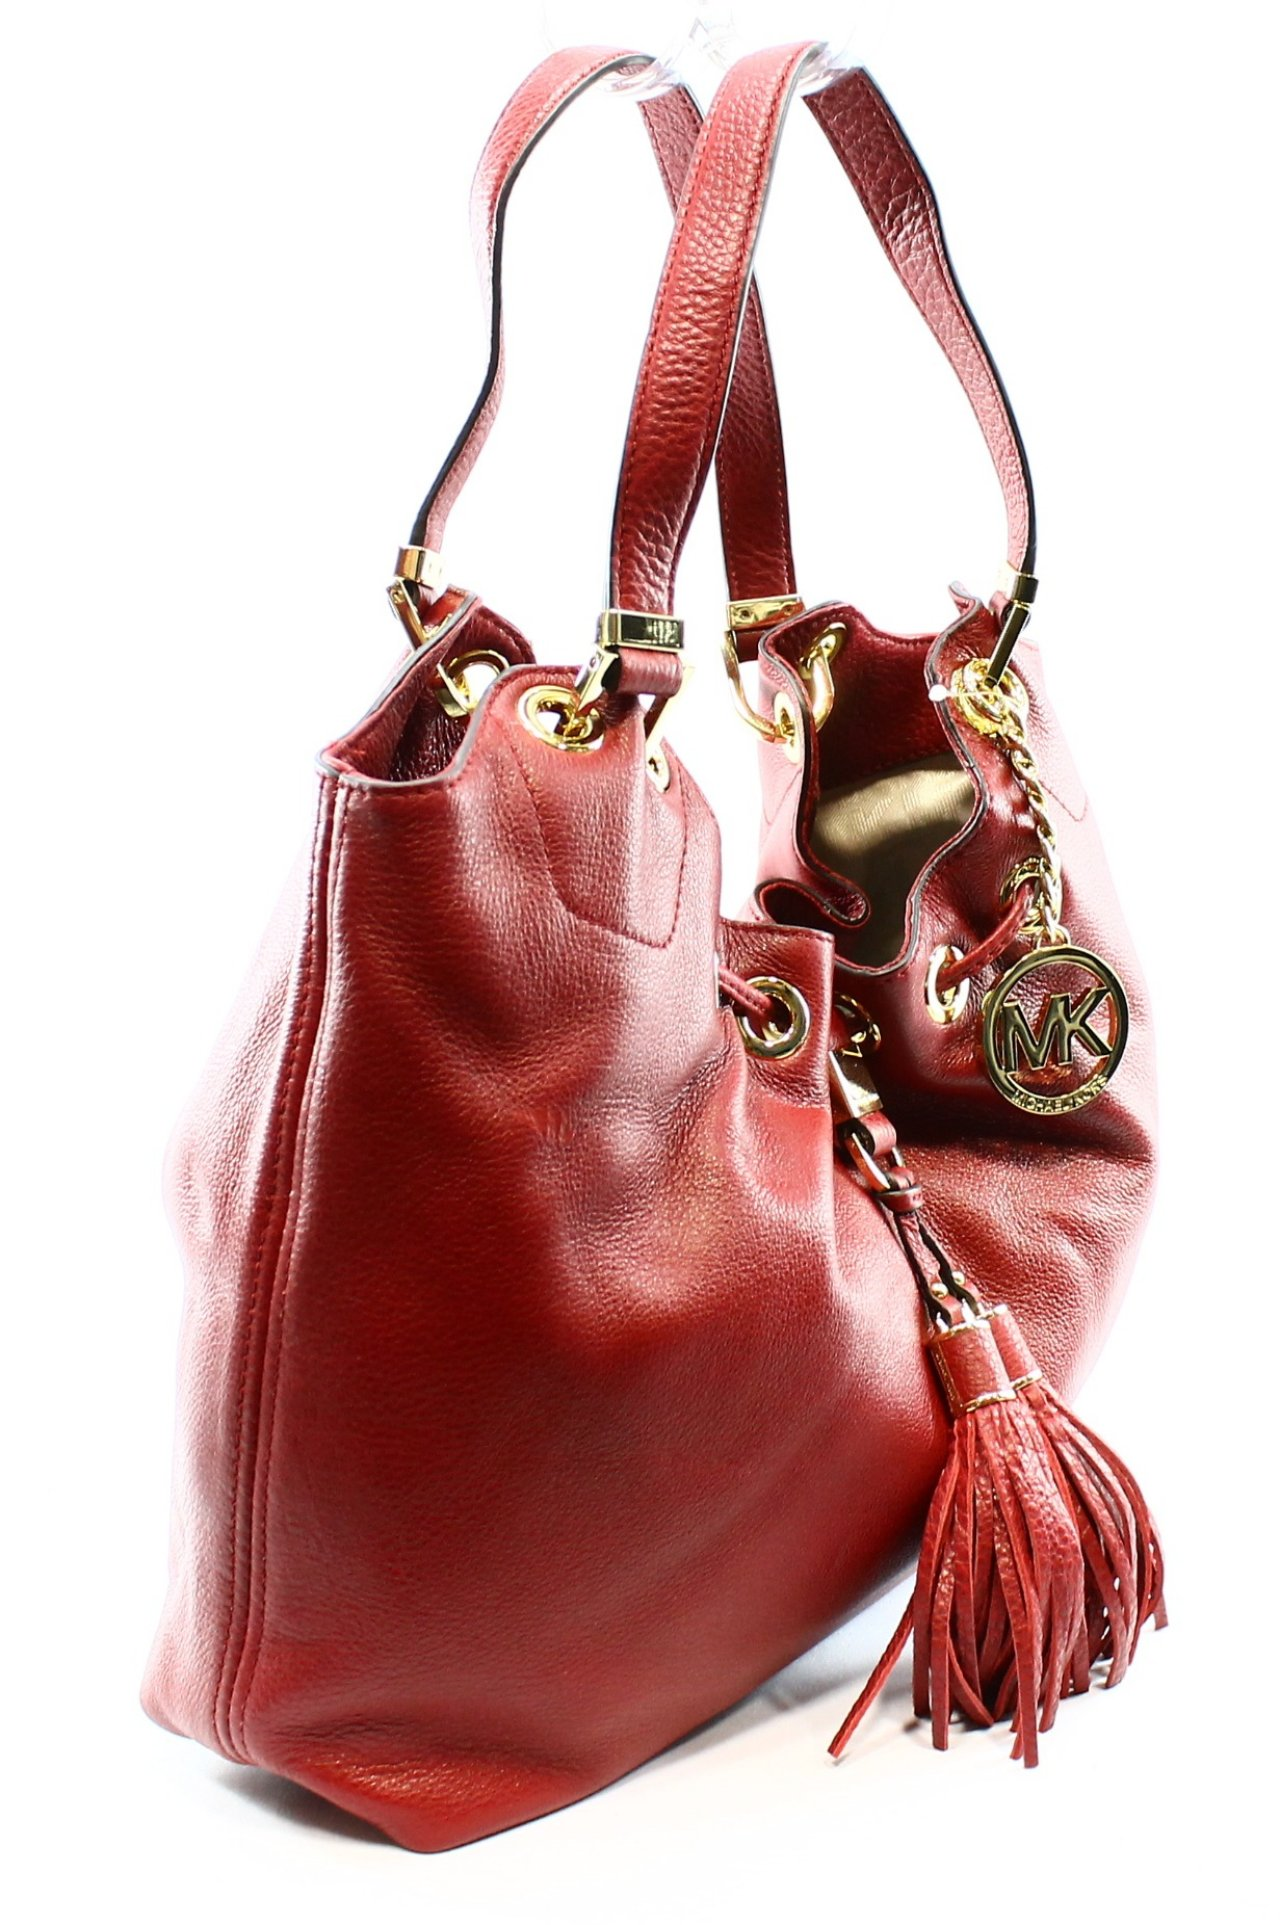 michael kors handbags outlet price  michael kors red cherry